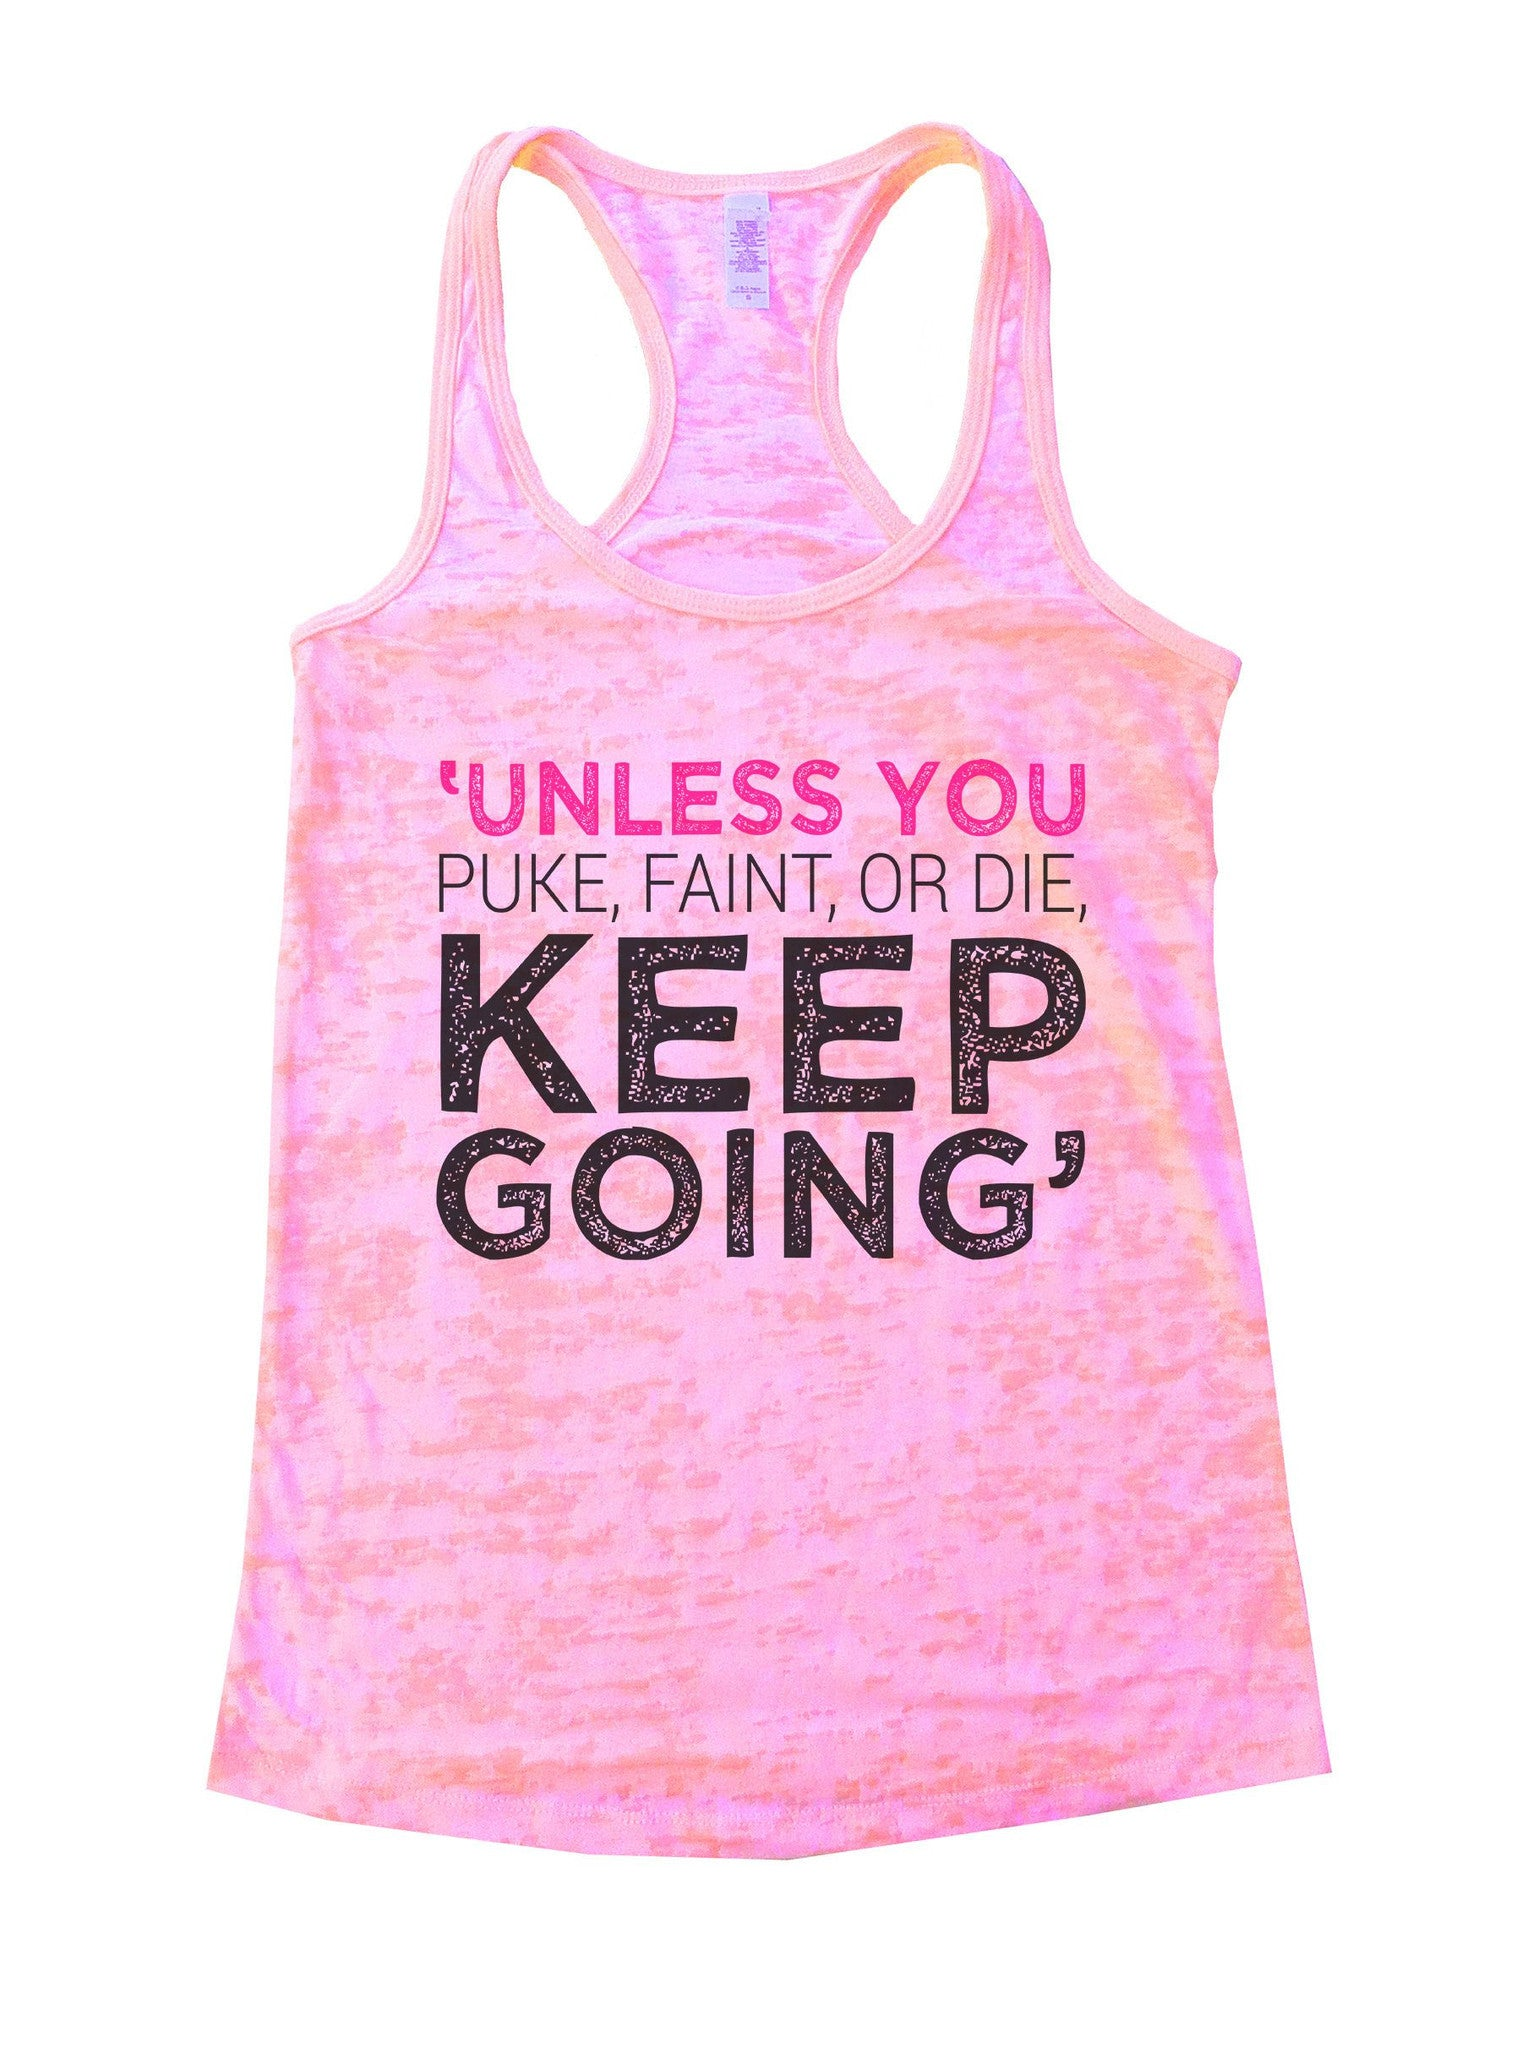 Unless You Puke, Faint, Or Die. Keep Going' Burnout Tank Top By BurnoutTankTops.com - 1104 - Funny Shirts Tank Tops Burnouts and Triblends  - 2